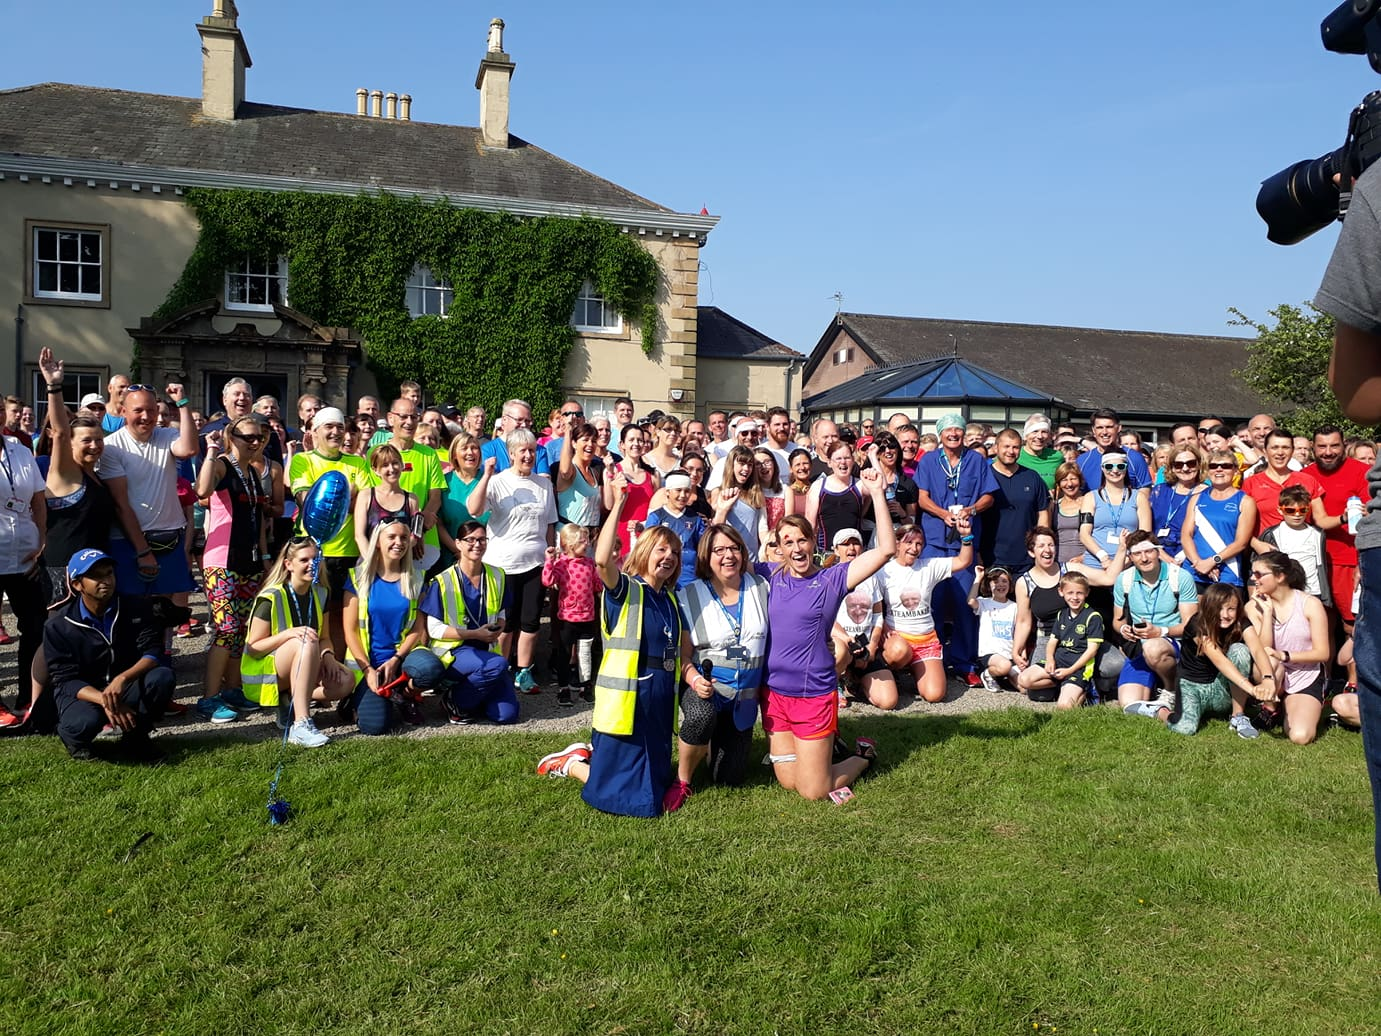 NHS parkrun being held on Saturday 1 June